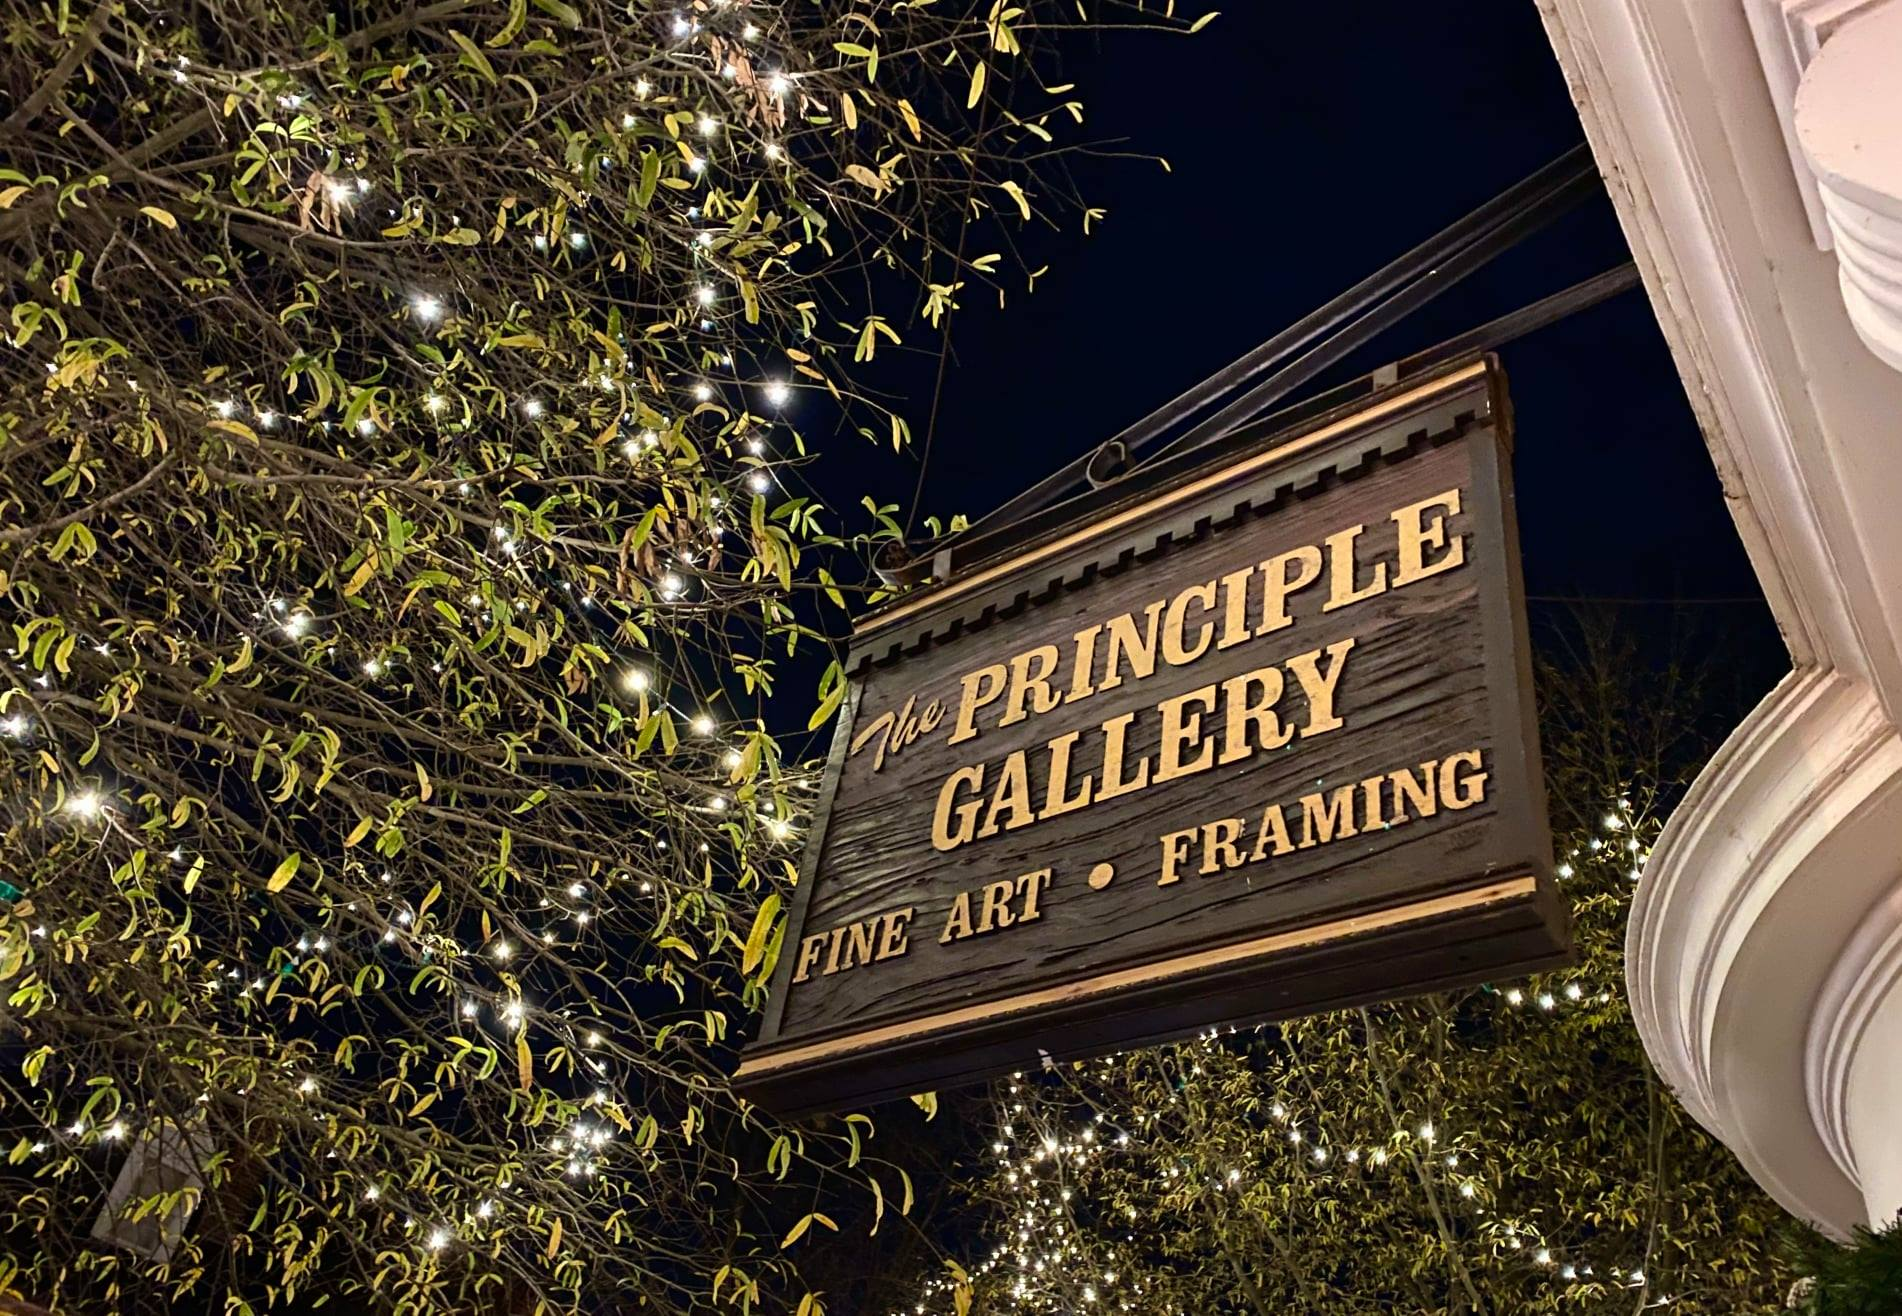 Gallery Feature: The Principle Gallery